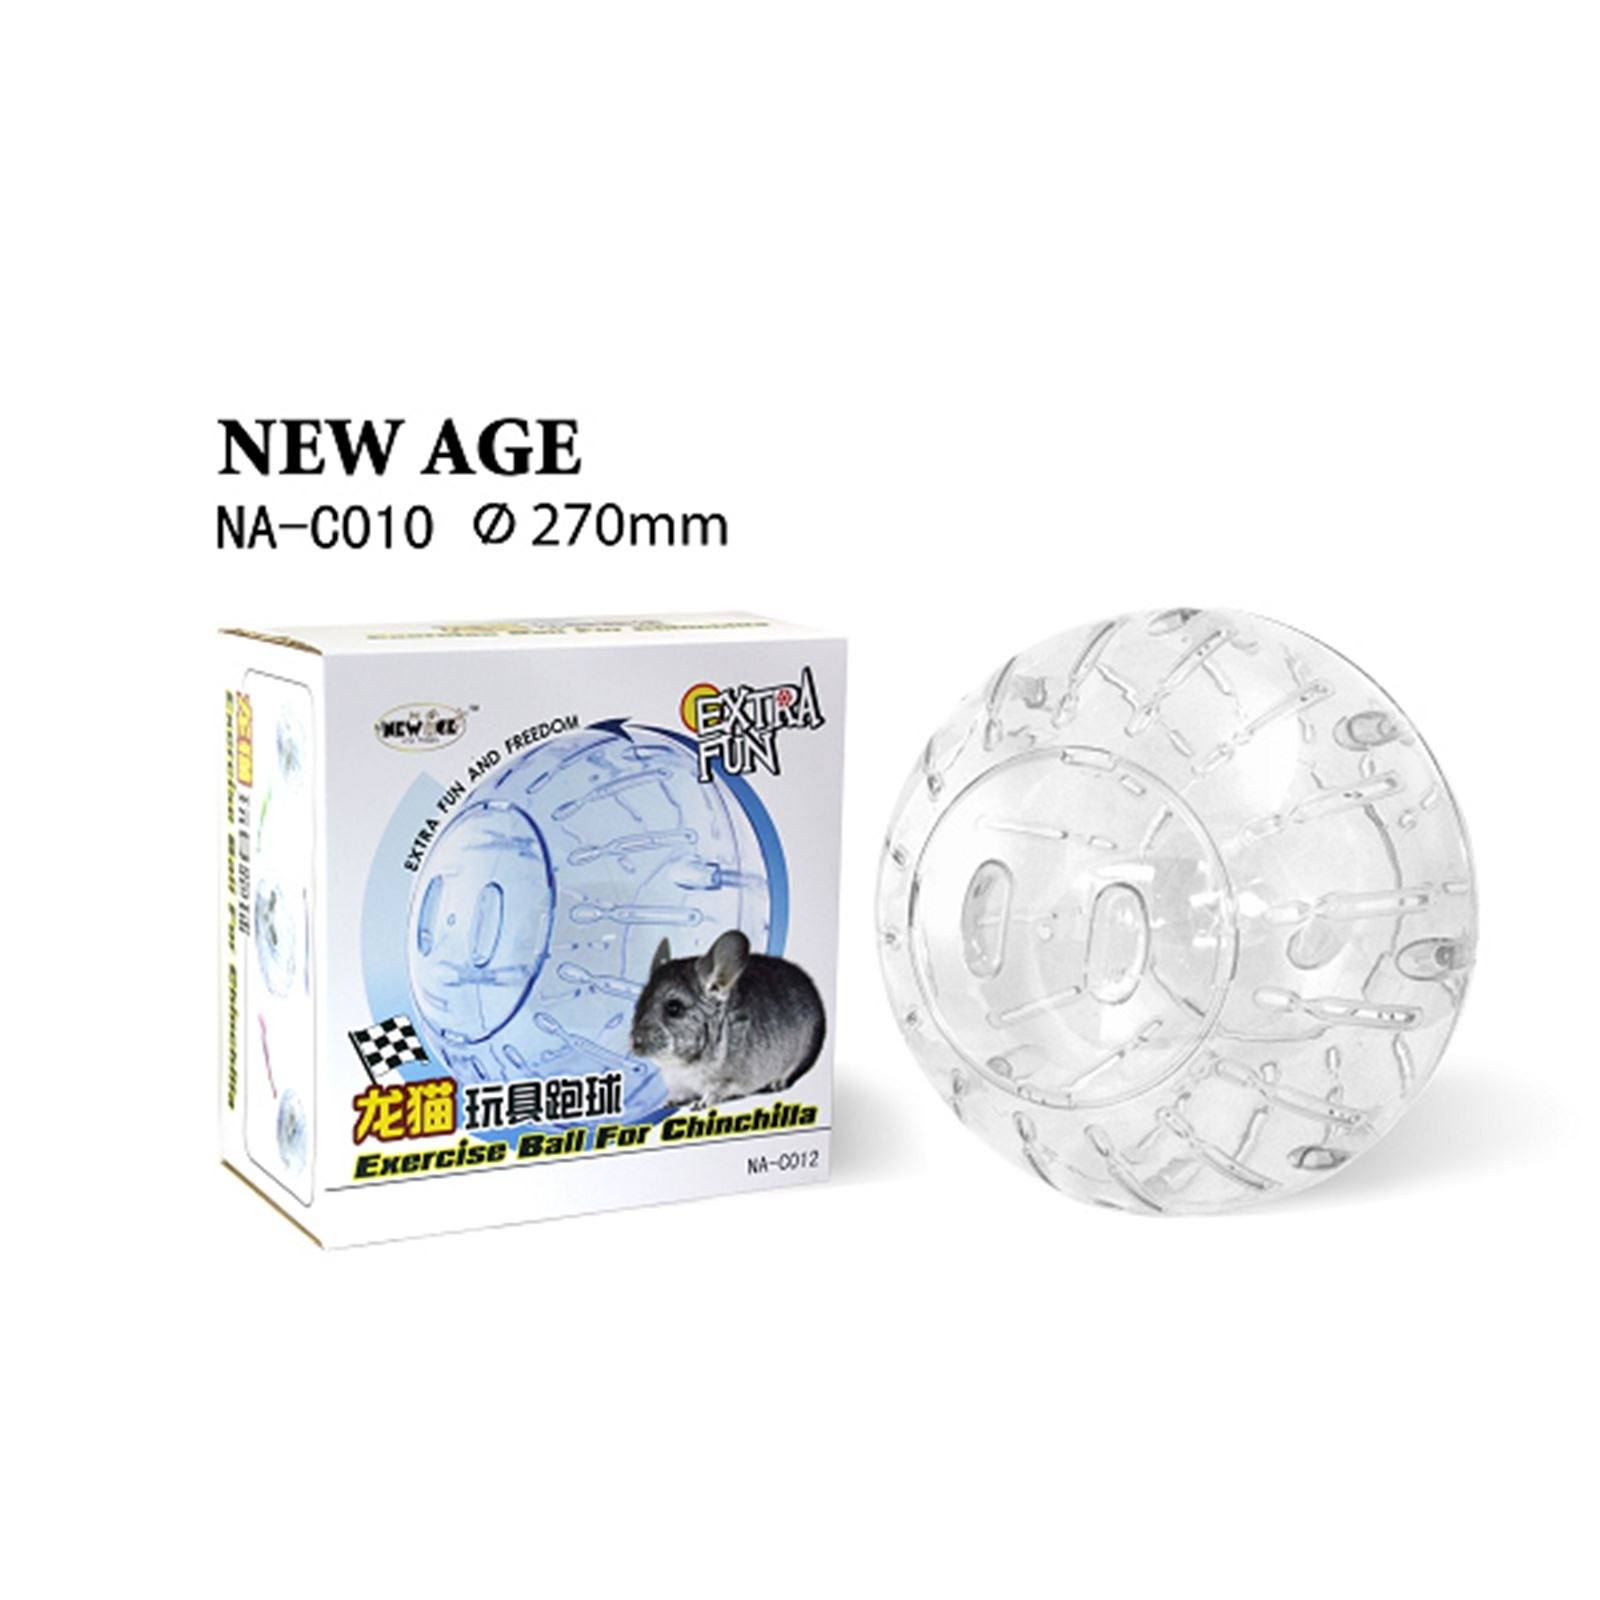 Edai New Age Chinchilla Exercise Ball Clear